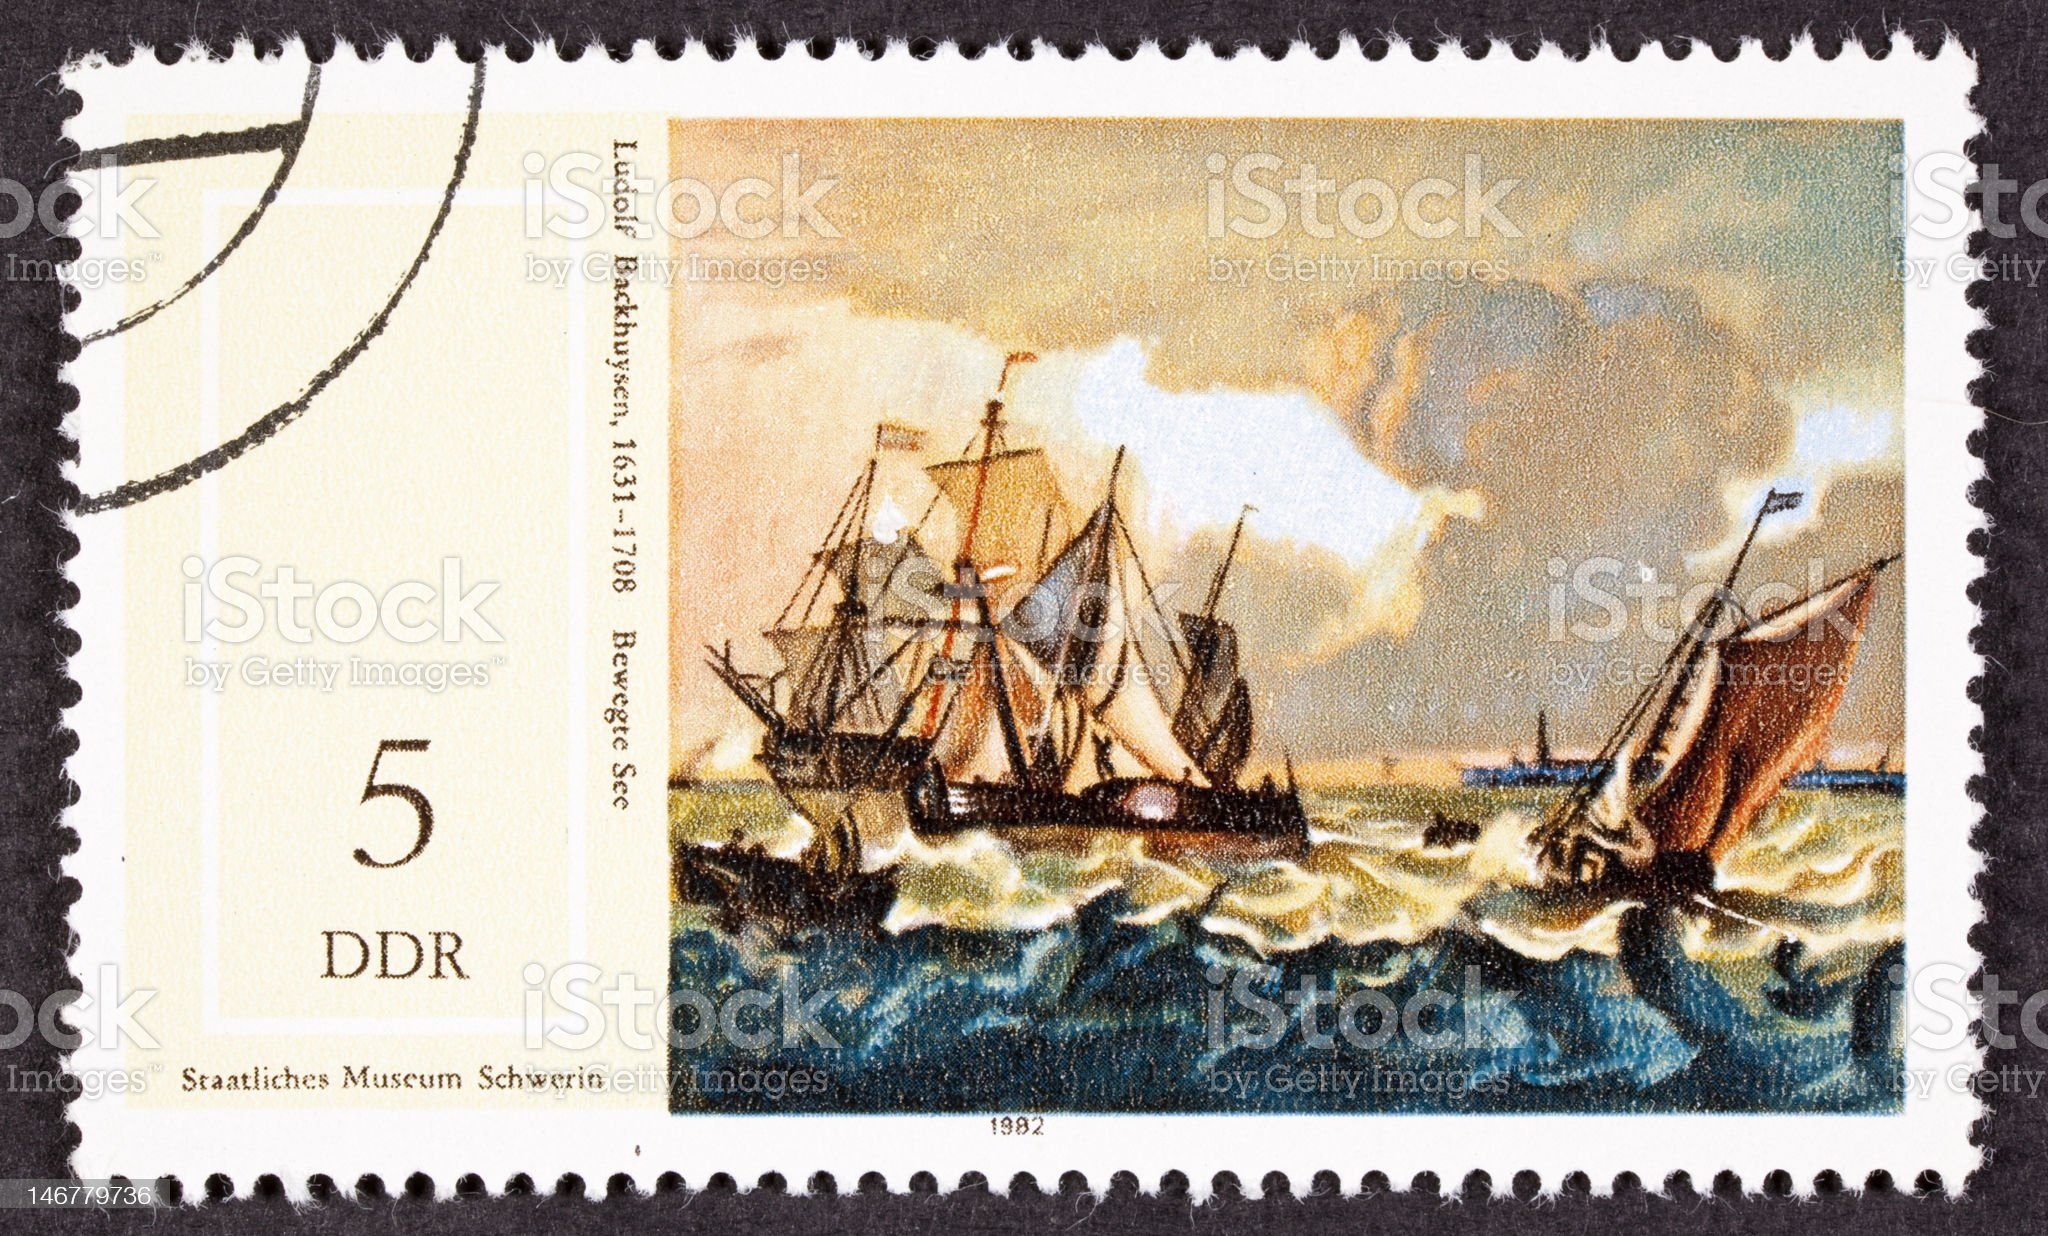 Painting Ludolf Backhuysen Bakhuizen Boats Rough Seas German Postage Stamp royalty-free stock vector art